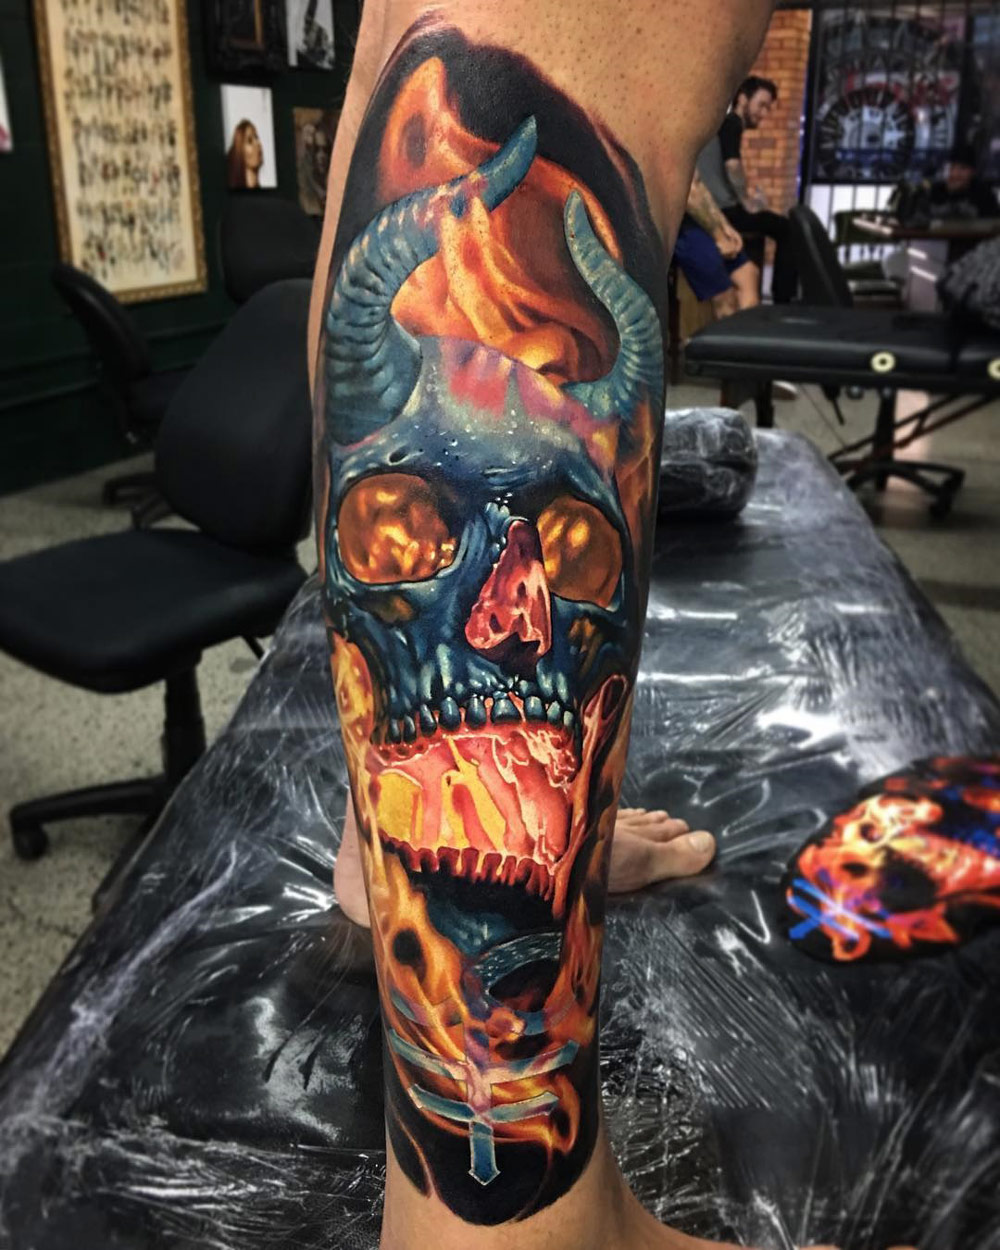 Demon Skull Tattoo, Flaming With Horns